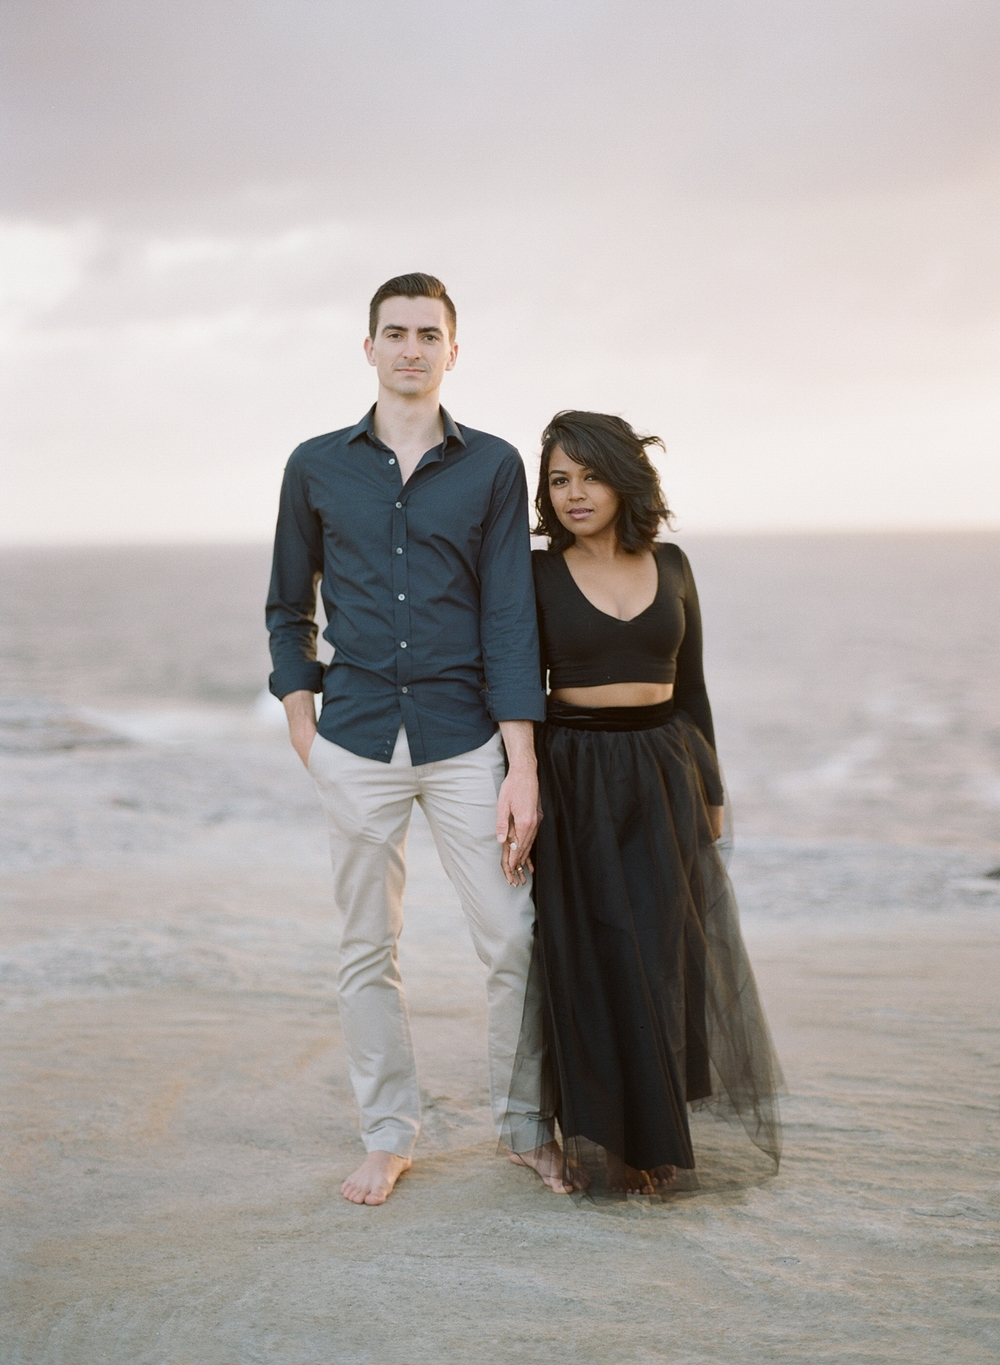 Coastal Sydney couples session by Mr Edwards Photography_0737_1138.jpg